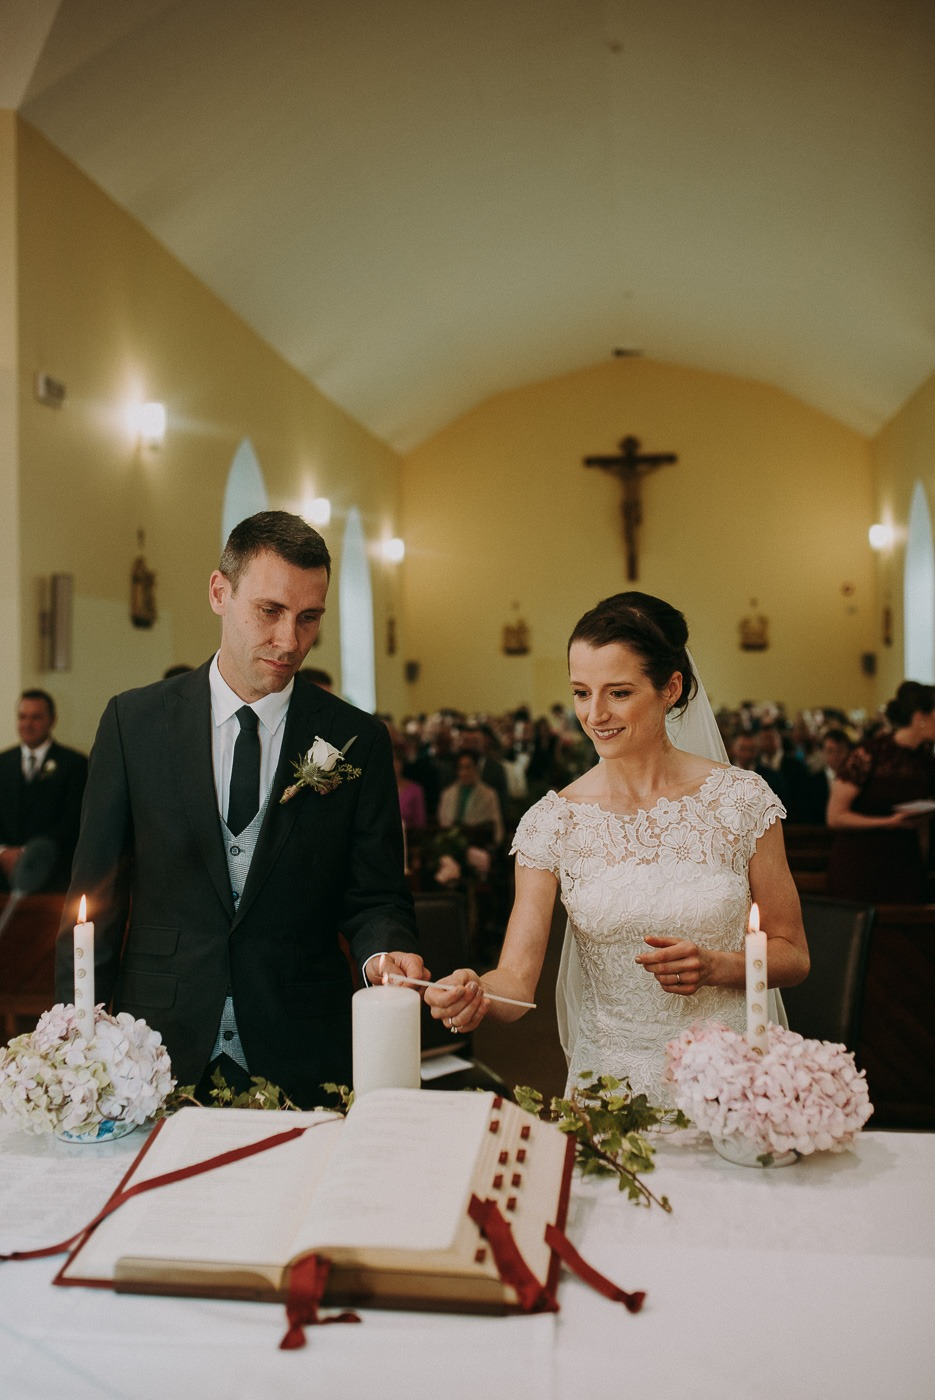 A person standing in front of a wedding cake